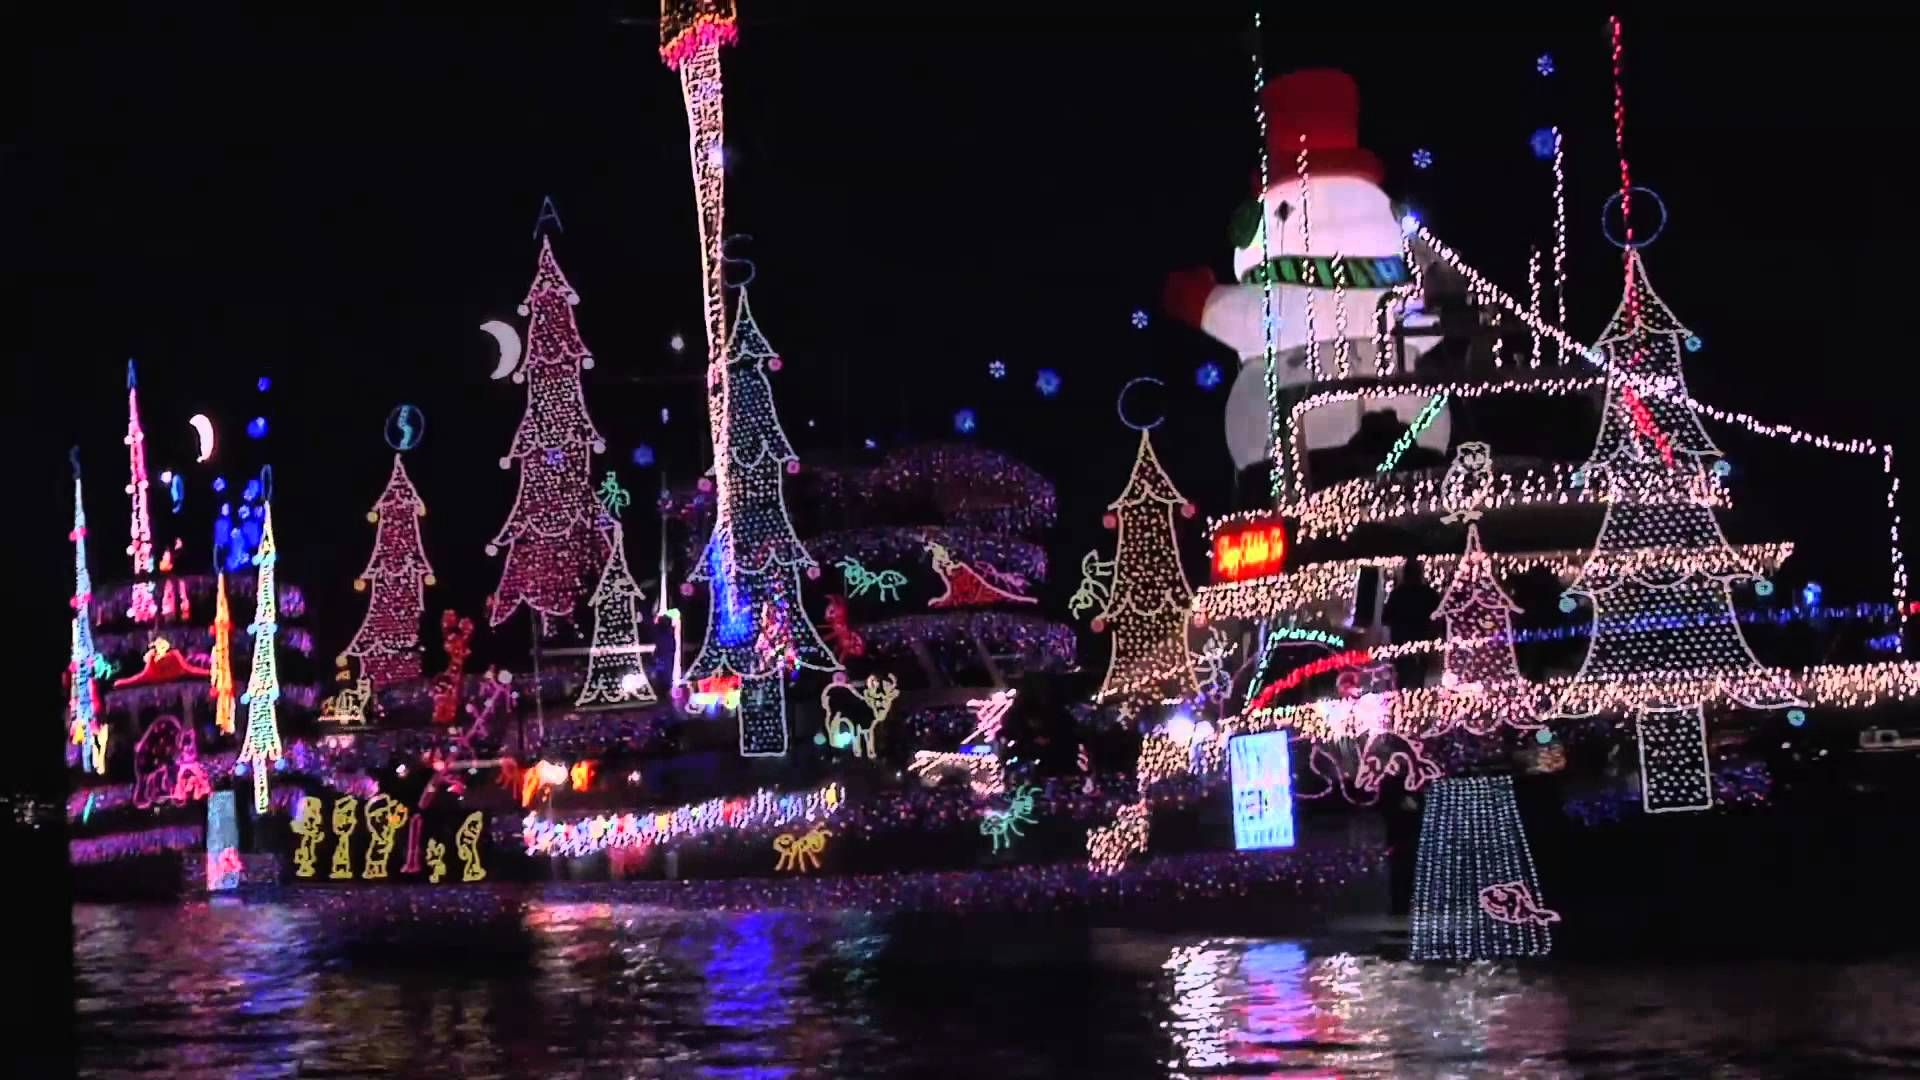 See Orange County Houses And Boats With Over The Top Christmas Displays Best Christmas Light Displays Christmas Light Displays Christmas Display